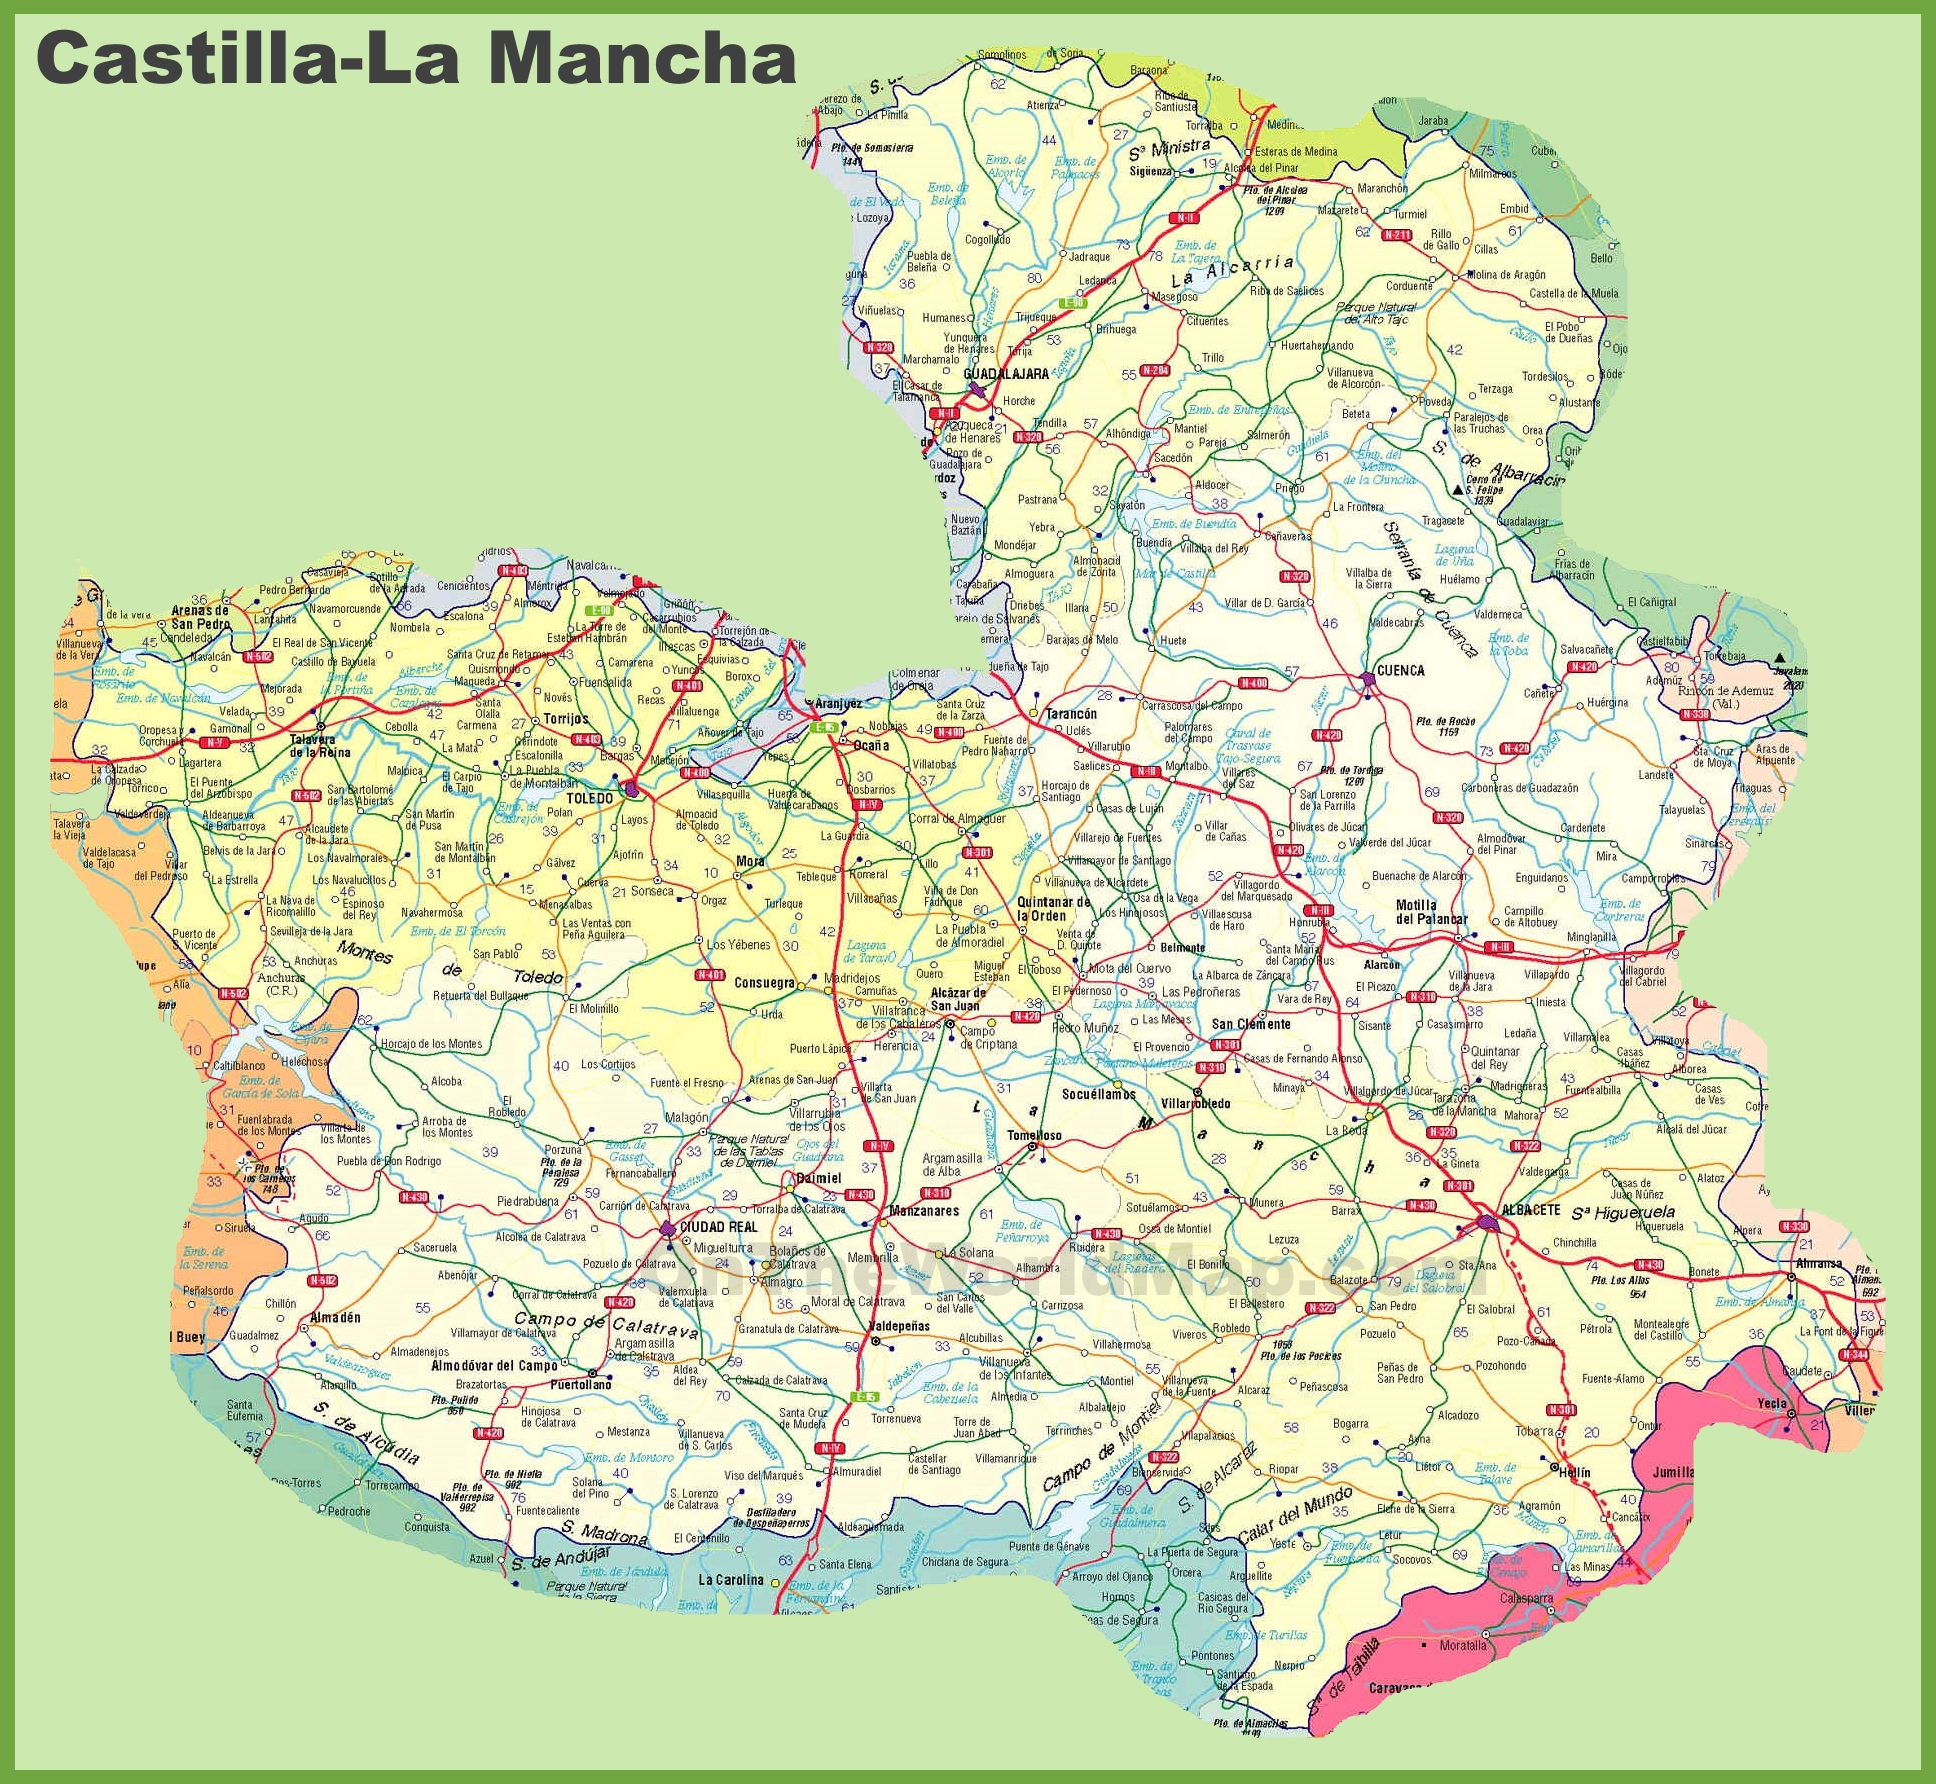 CastillaLa Mancha road map